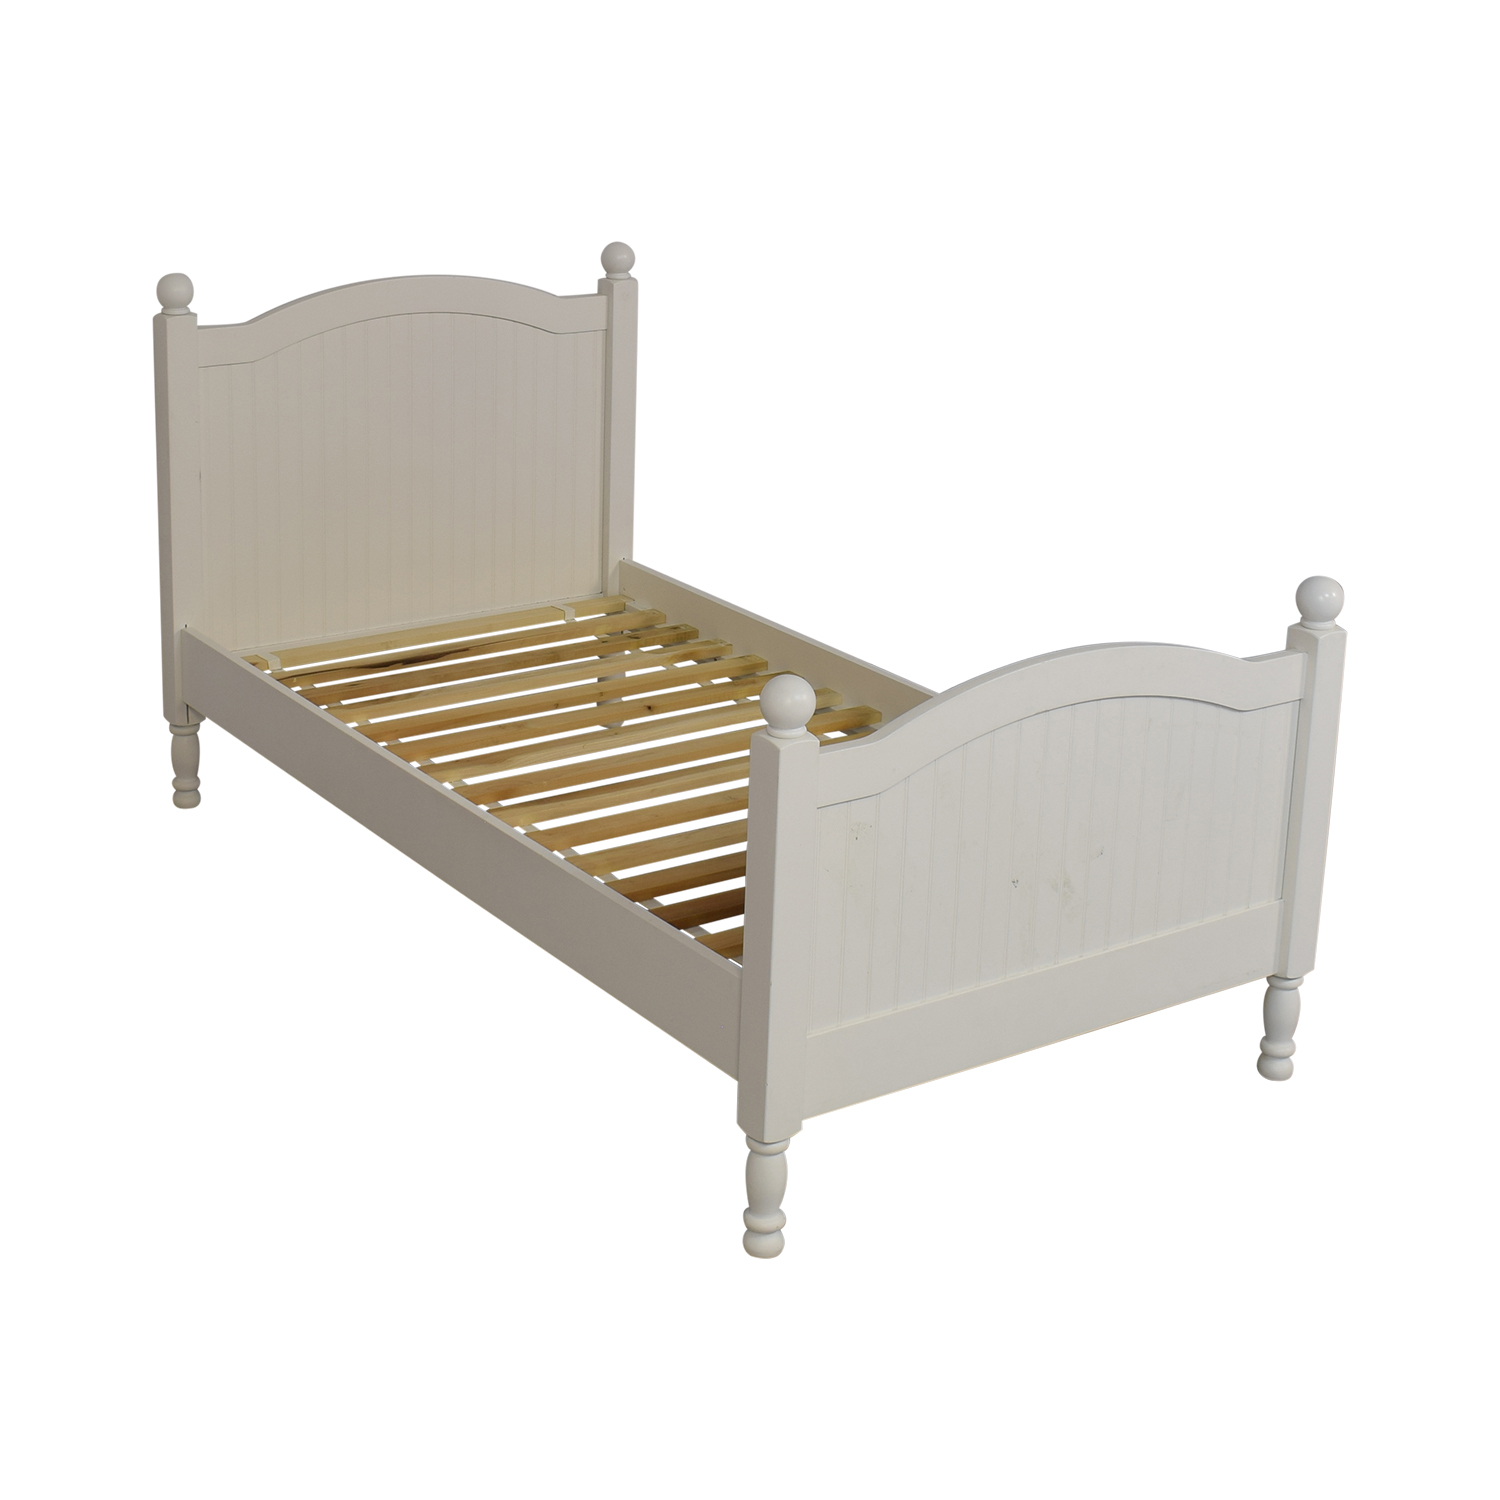 83 Off Pottery Barn Kids Pottery Barn Kids Catalina Twin Bed Simply White Beds